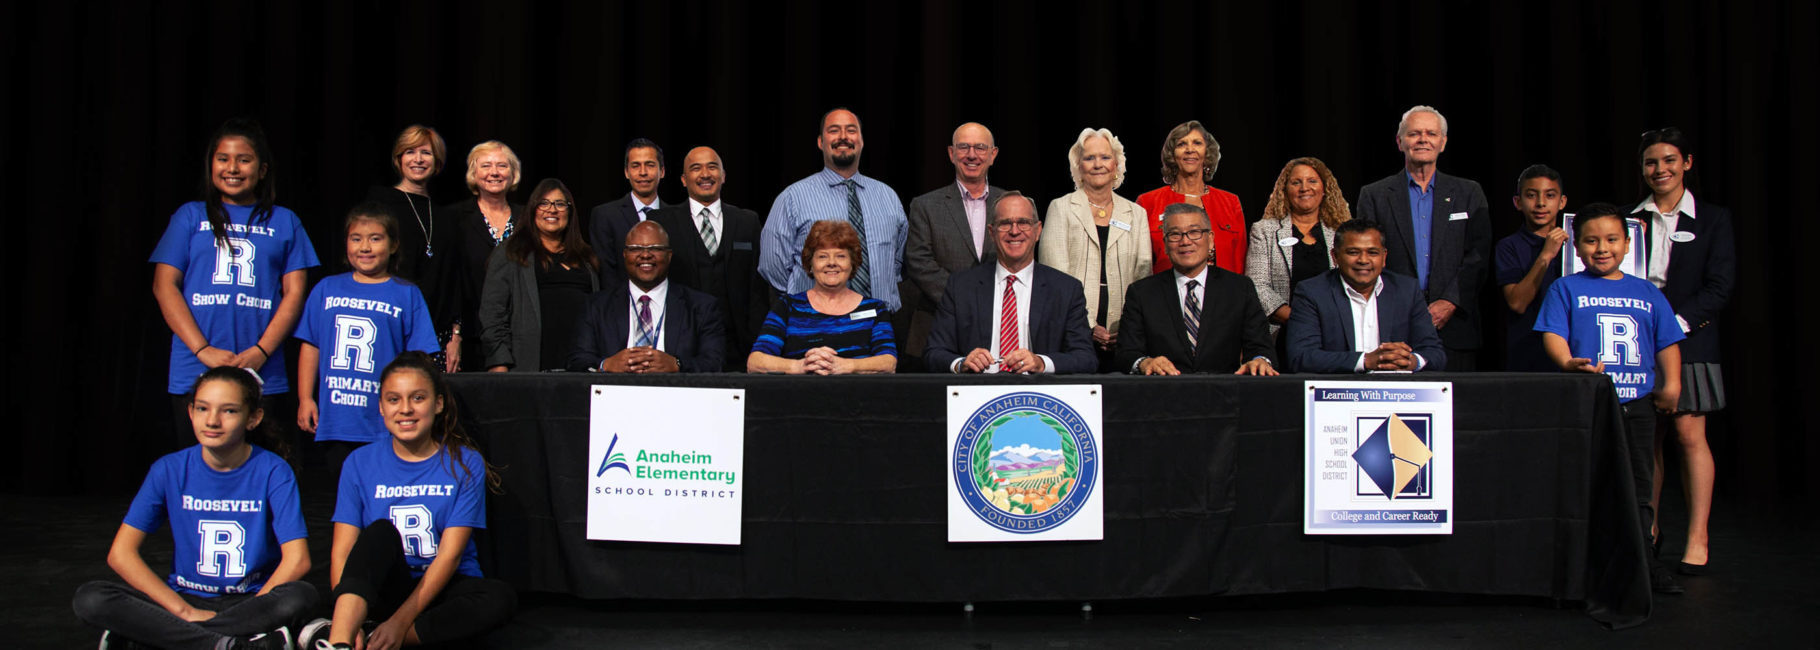 Anaheim stakeholders sign the Anaheim Pledge.